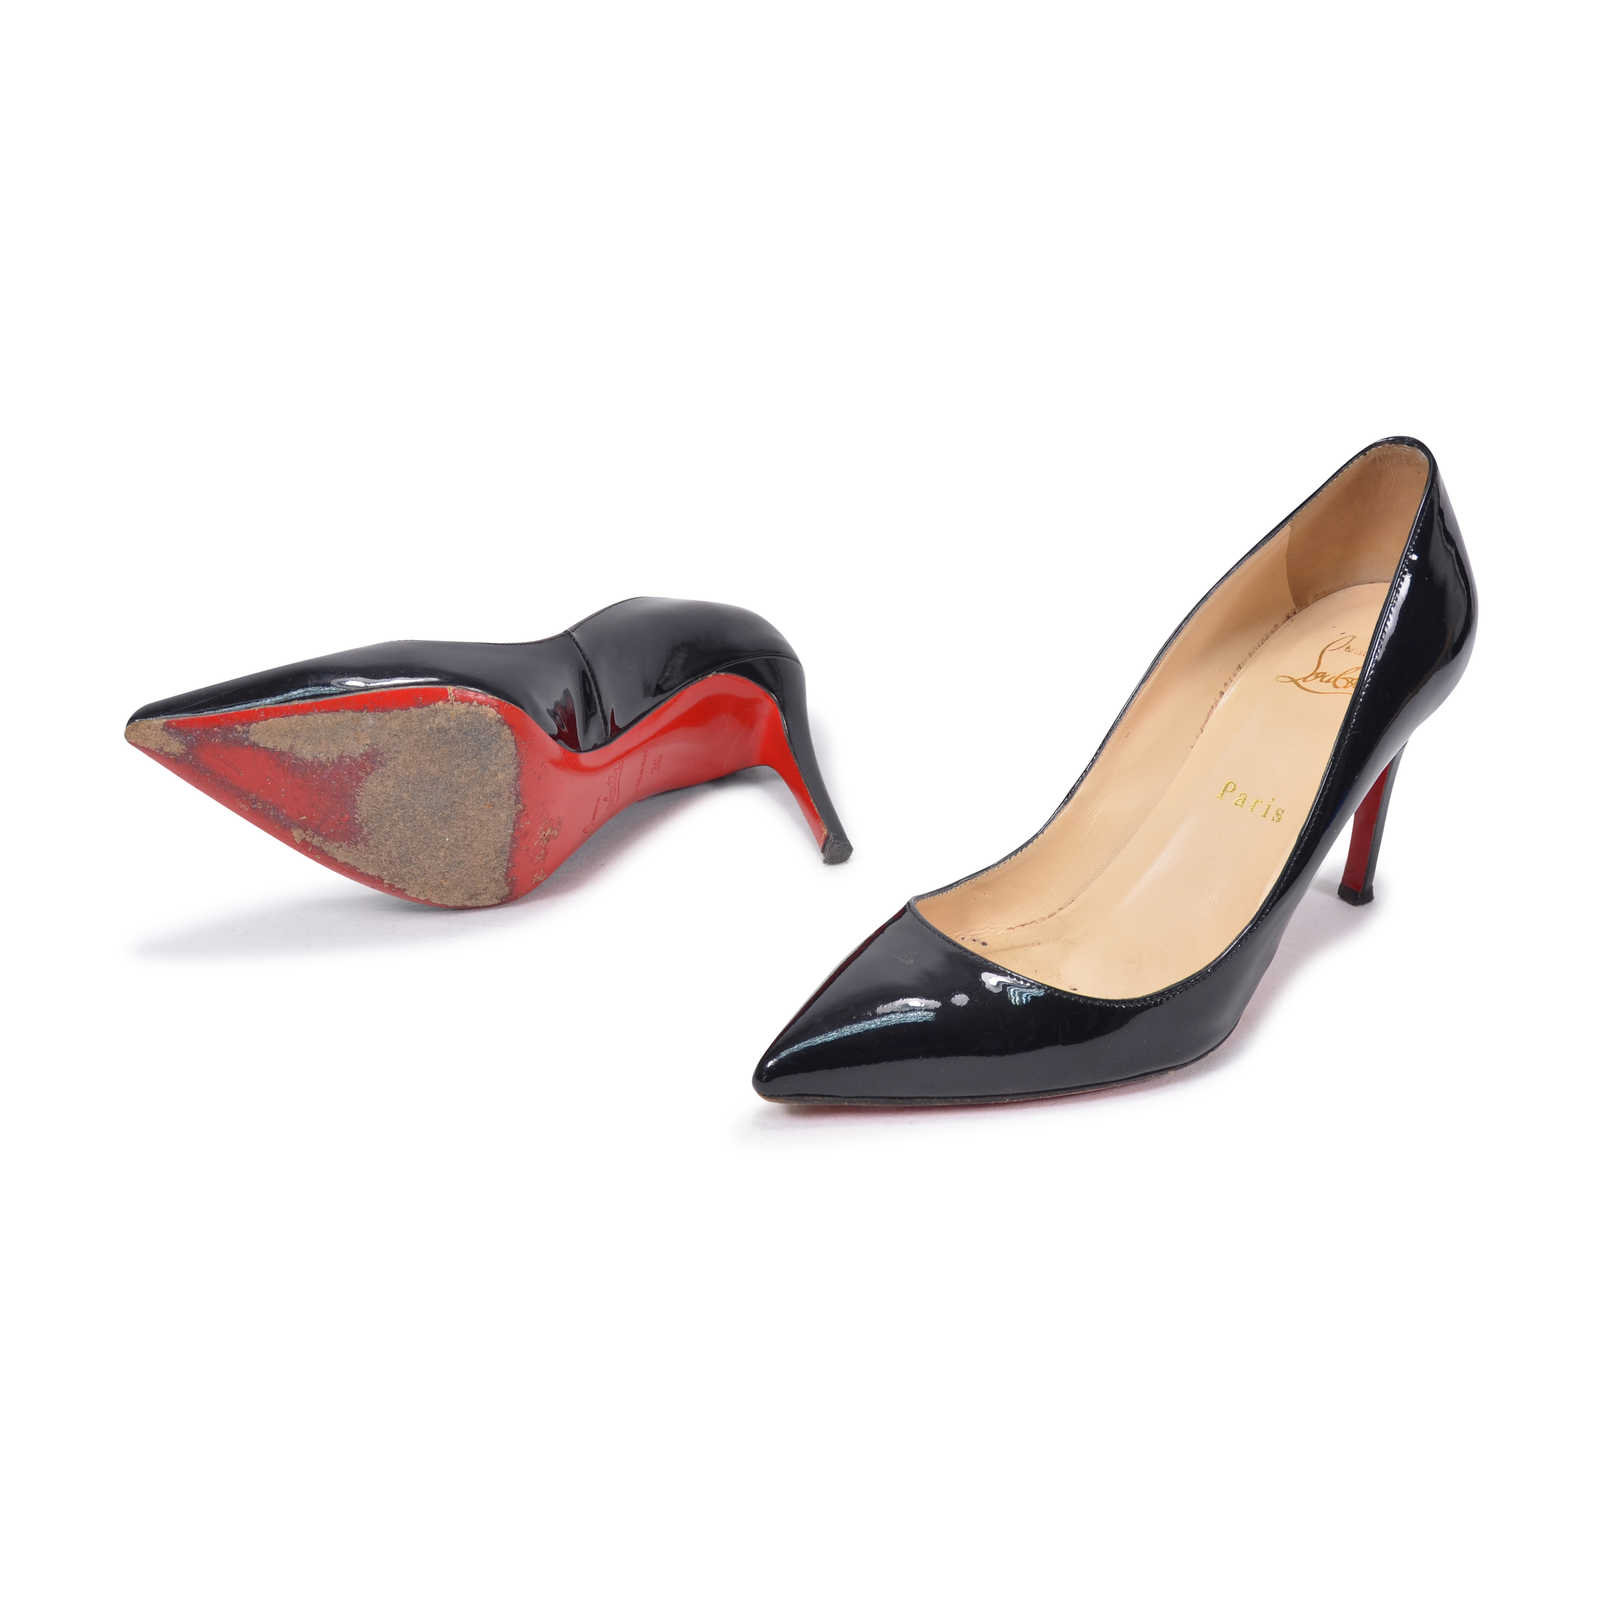 best website 1cc6f 94264 Authentic Second Hand Christian Louboutin Pigalle 85 Patent ...